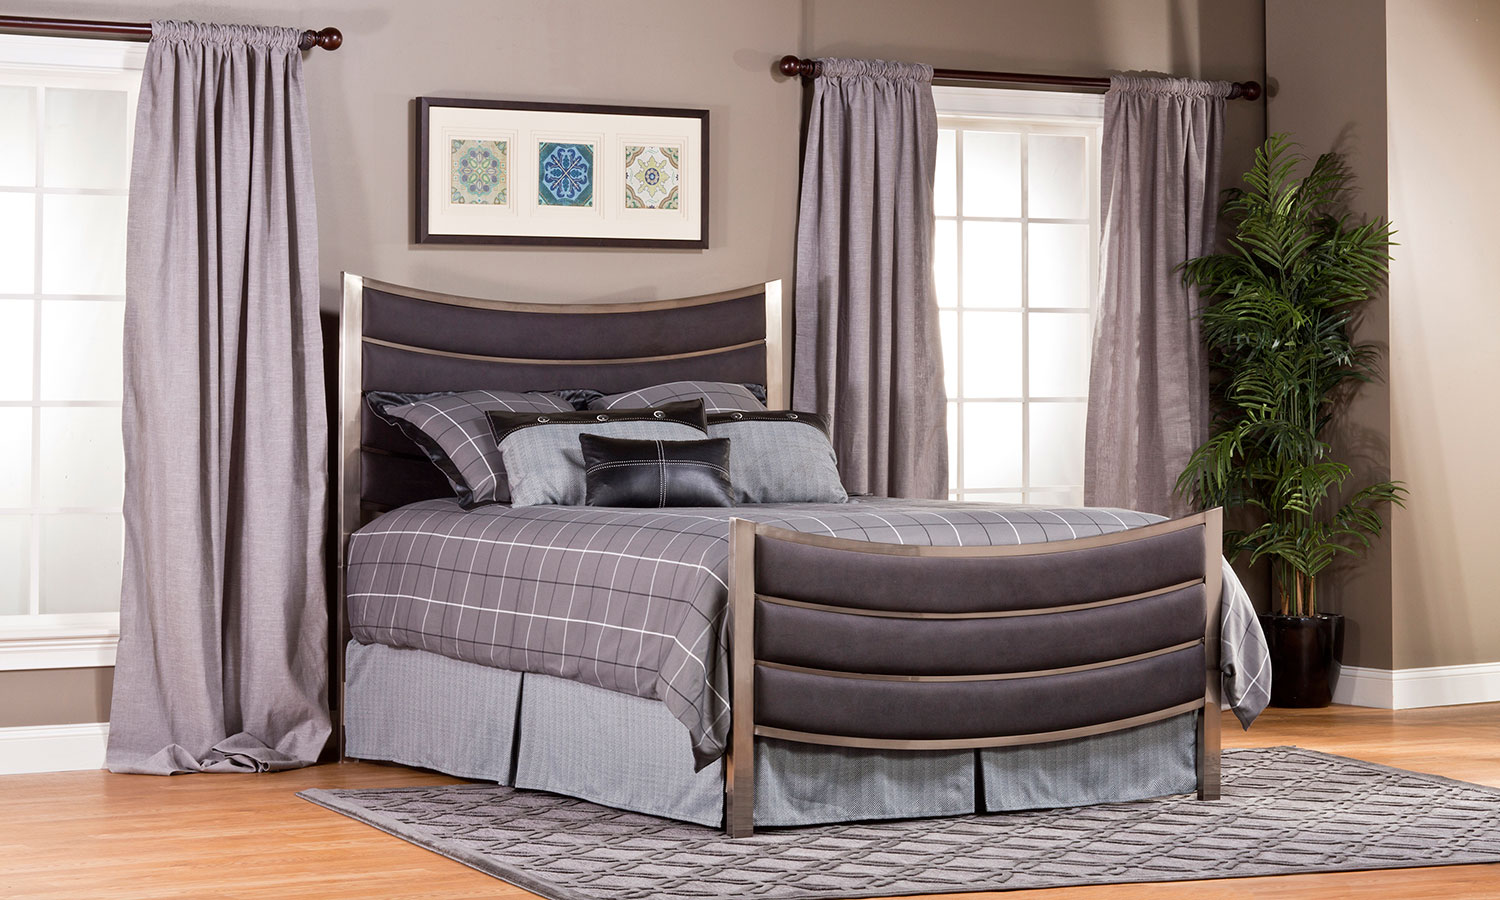 Hillsdale Montego Bed - Antique Nickel - Dusty Pebble Black